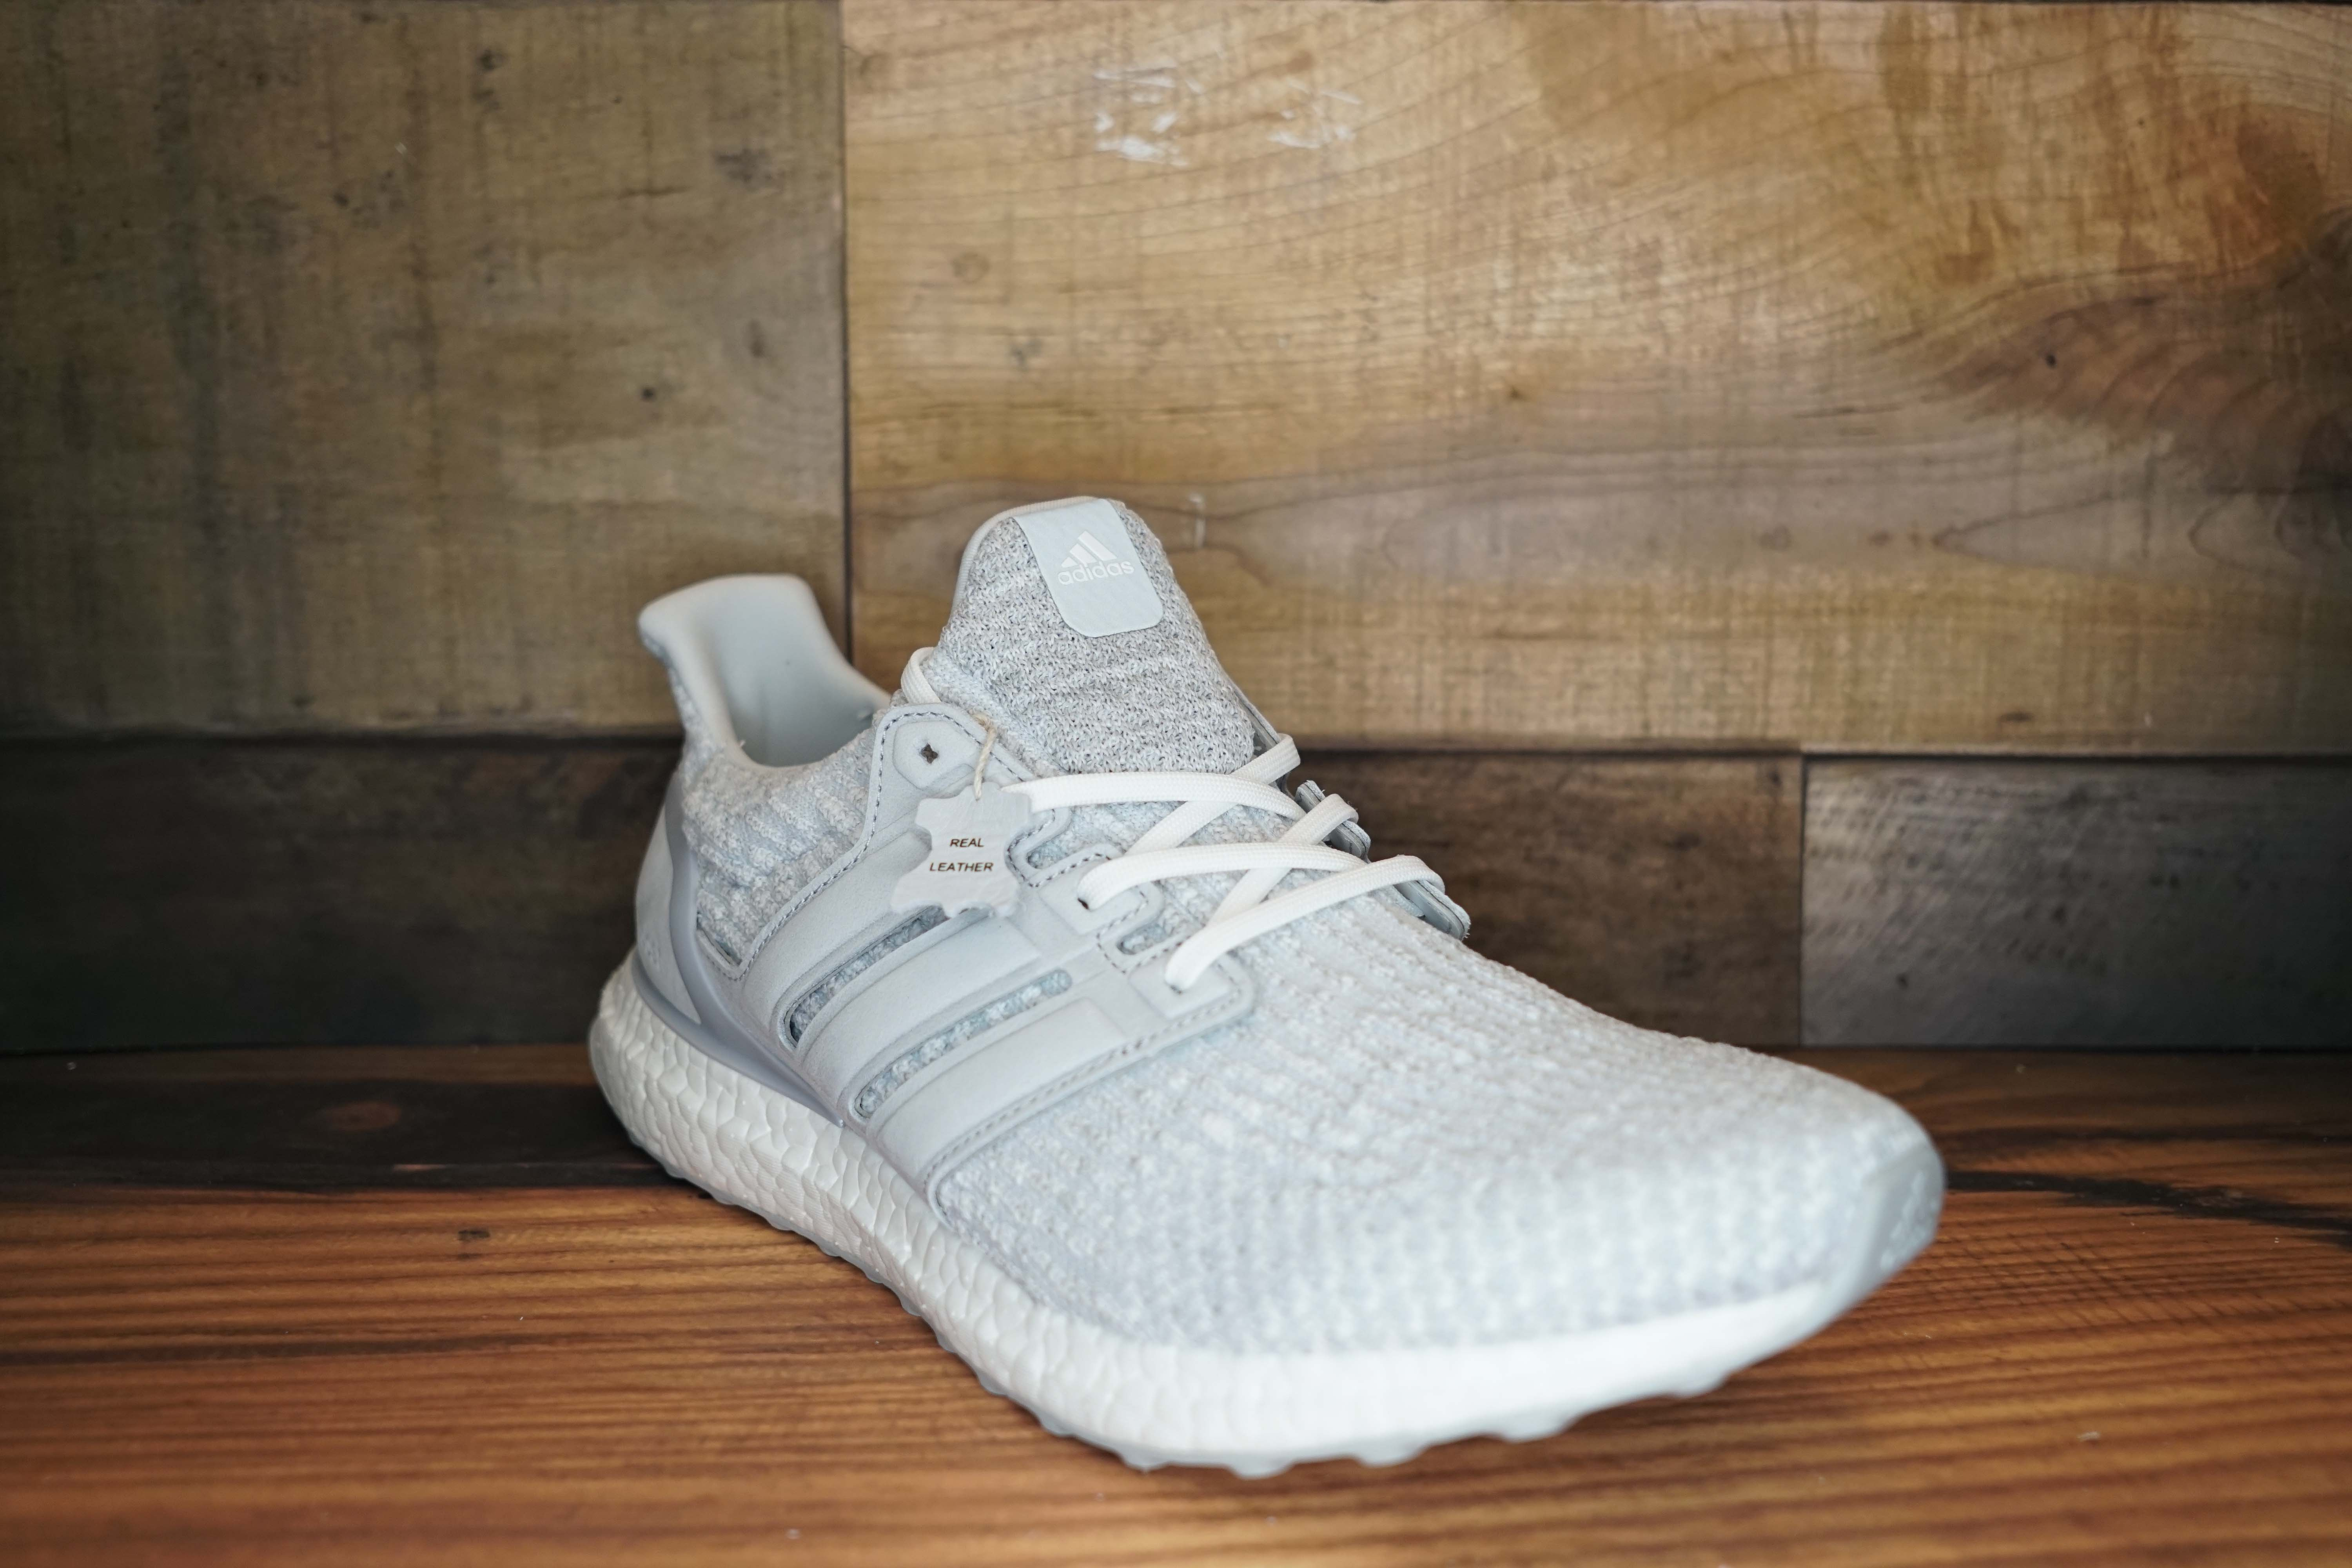 dd12cdd841e83 ... discount code for adidas ultraboost reigning champ 2017 new original  box 2bda6 510c6